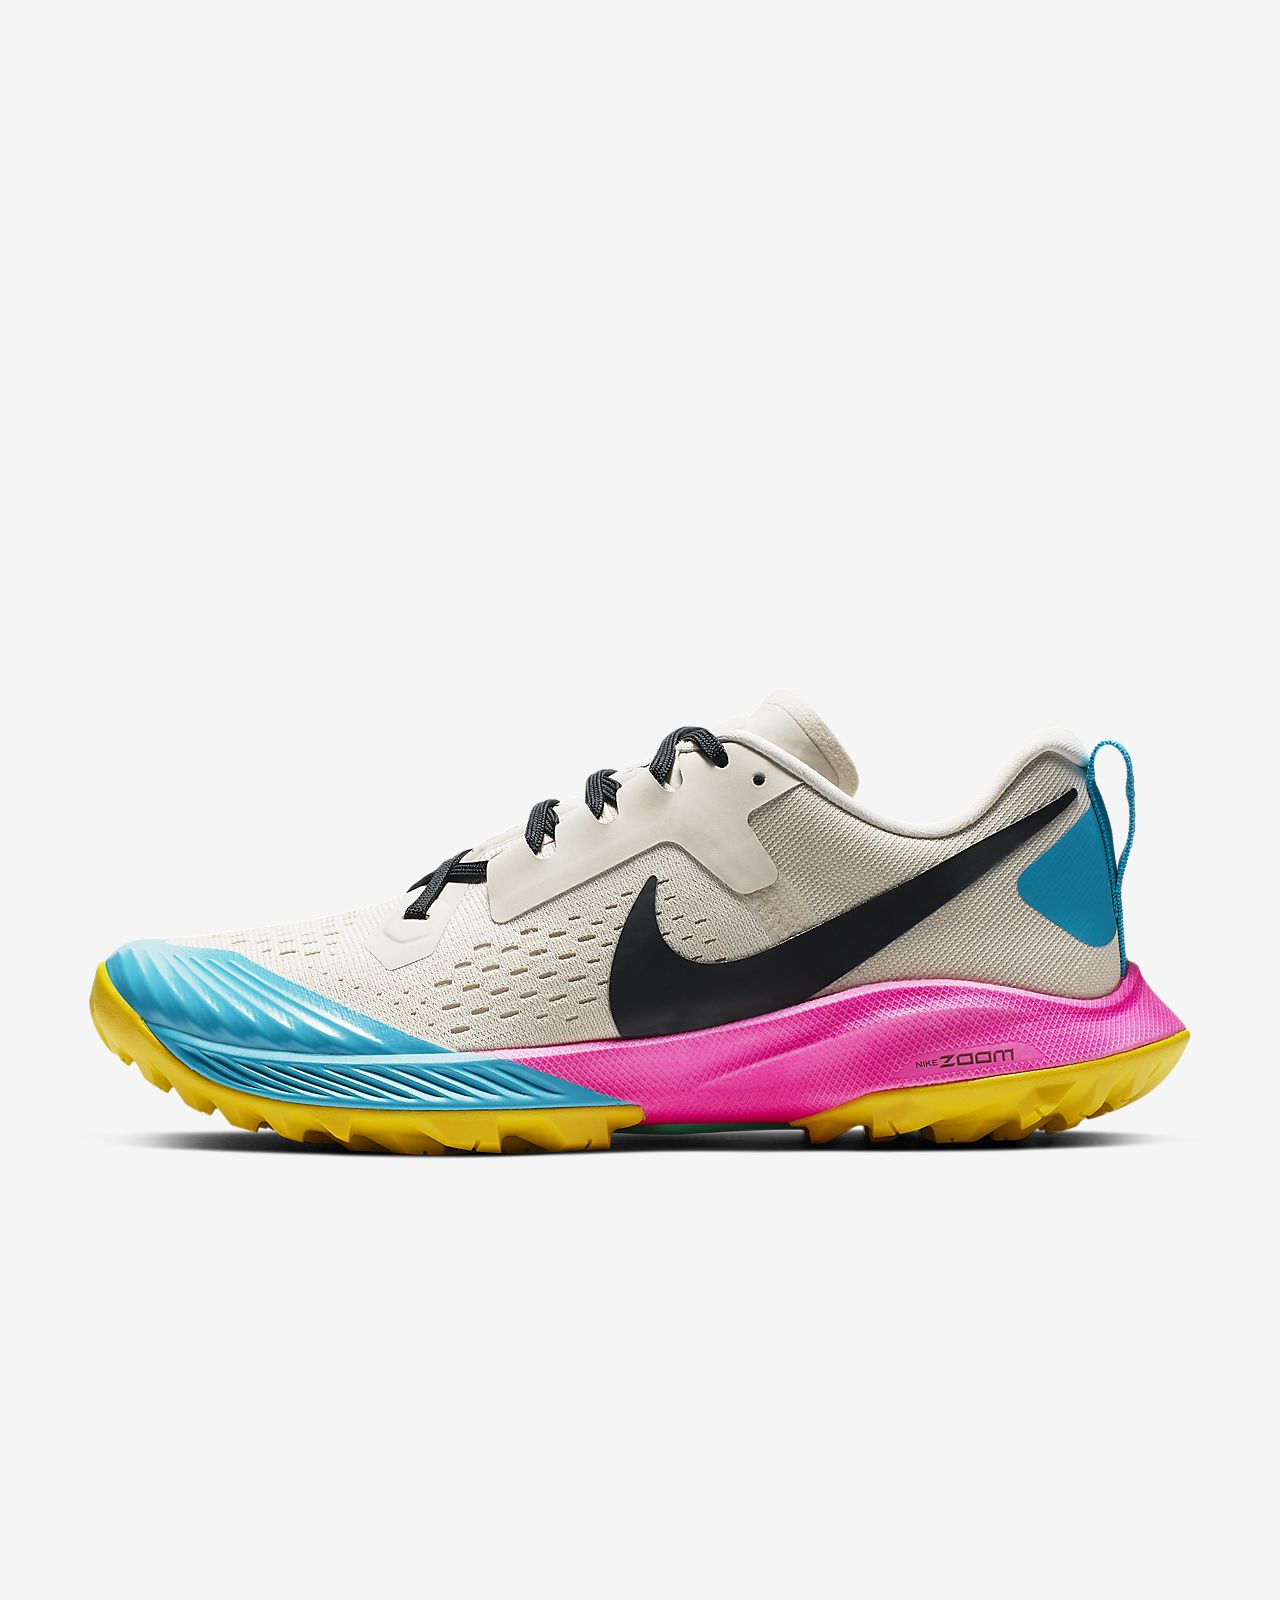 info for 1bfe8 33dea ... Chaussure de running Nike Air Zoom Terra Kiger 5 pour Femme